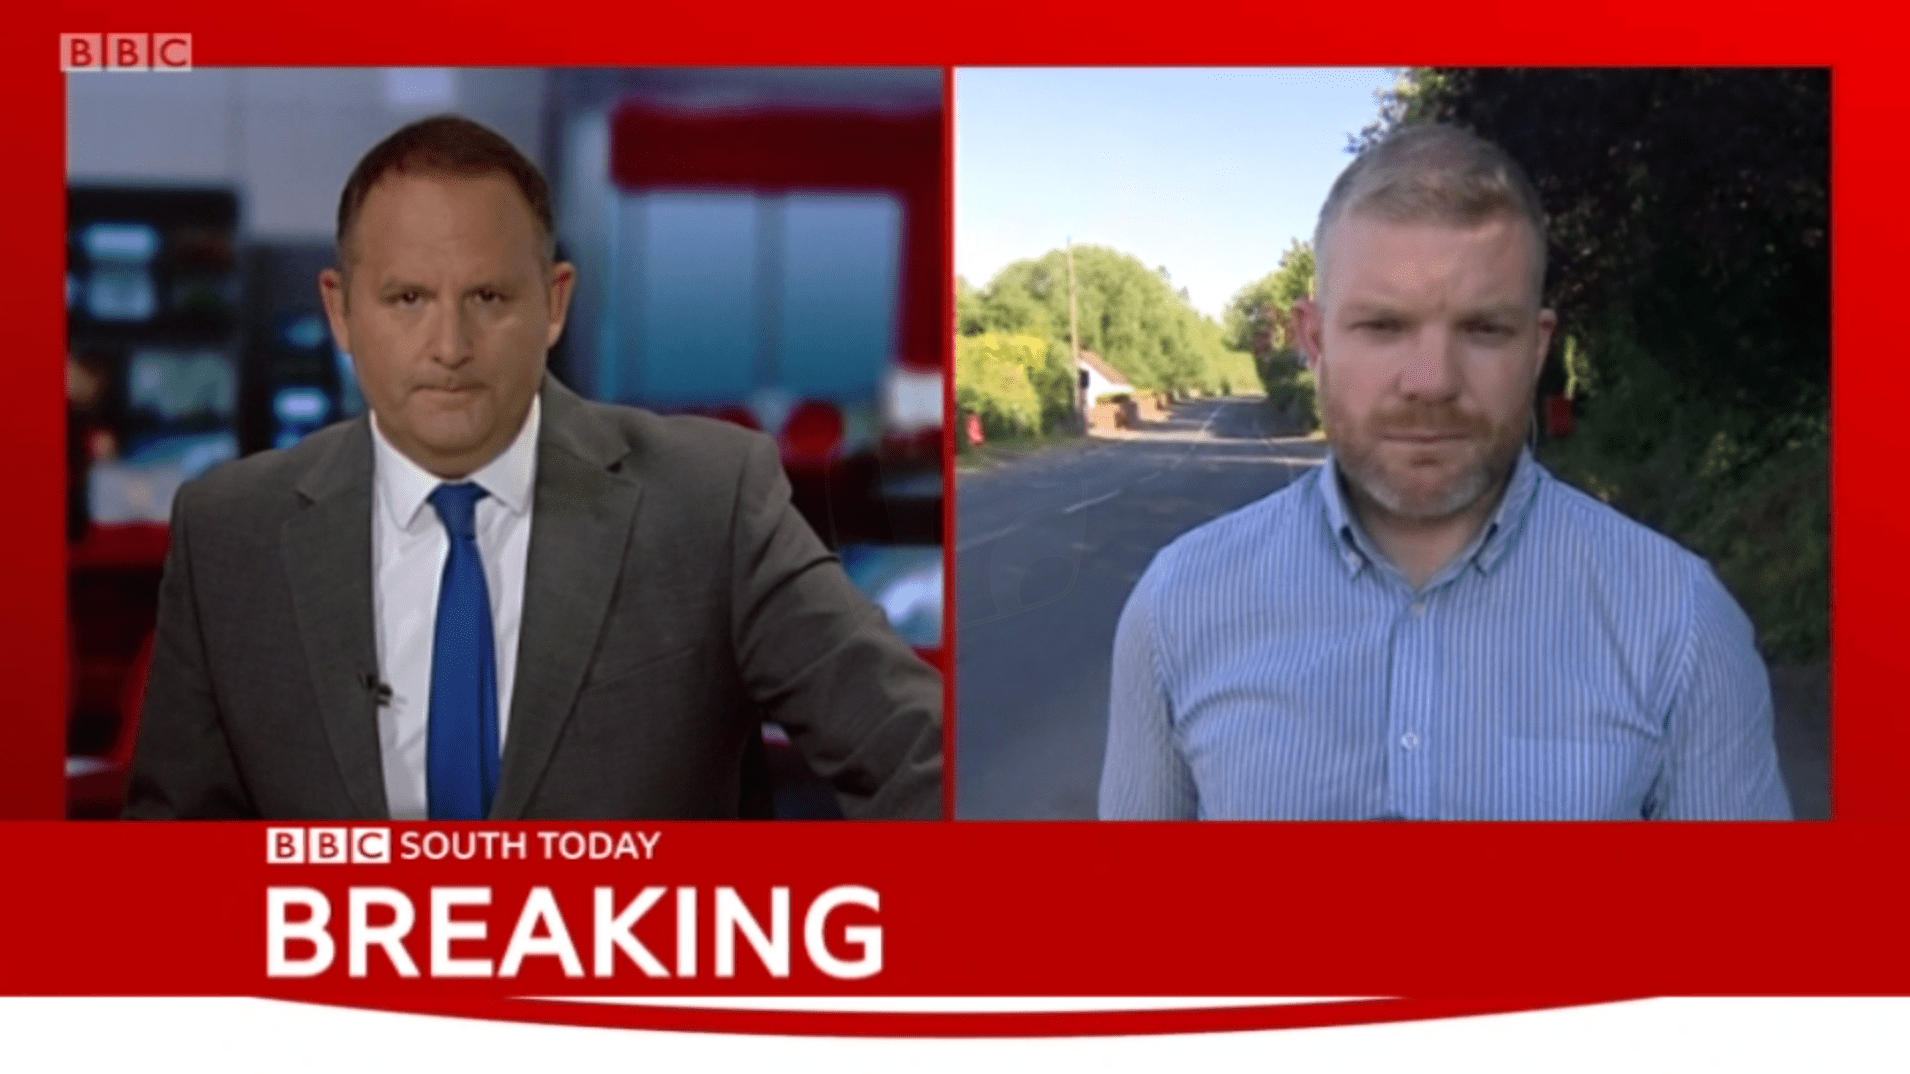 PICTURED: BBC South Today (Oxford) lower-third and 2-screen graphic. Presenter: Jerome Sale. Reporter: TBC.